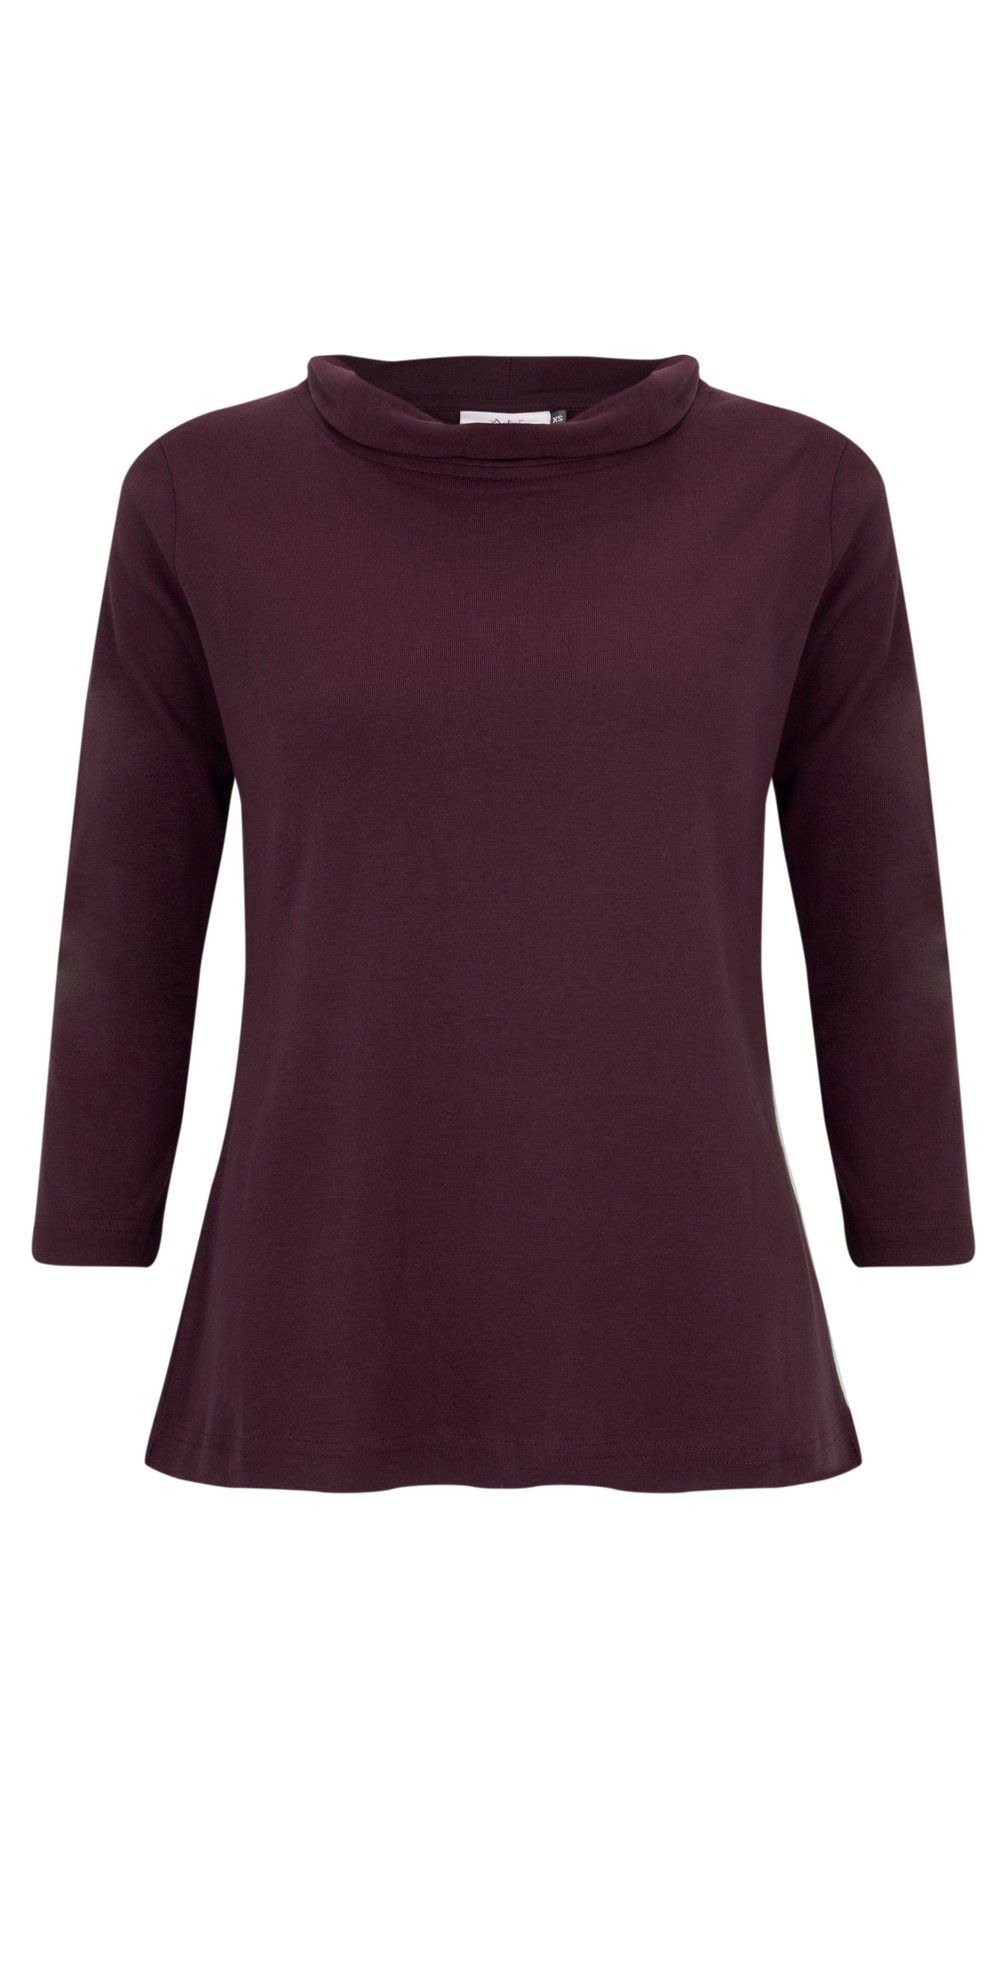 Sacha Soft Roll Neck Top main image